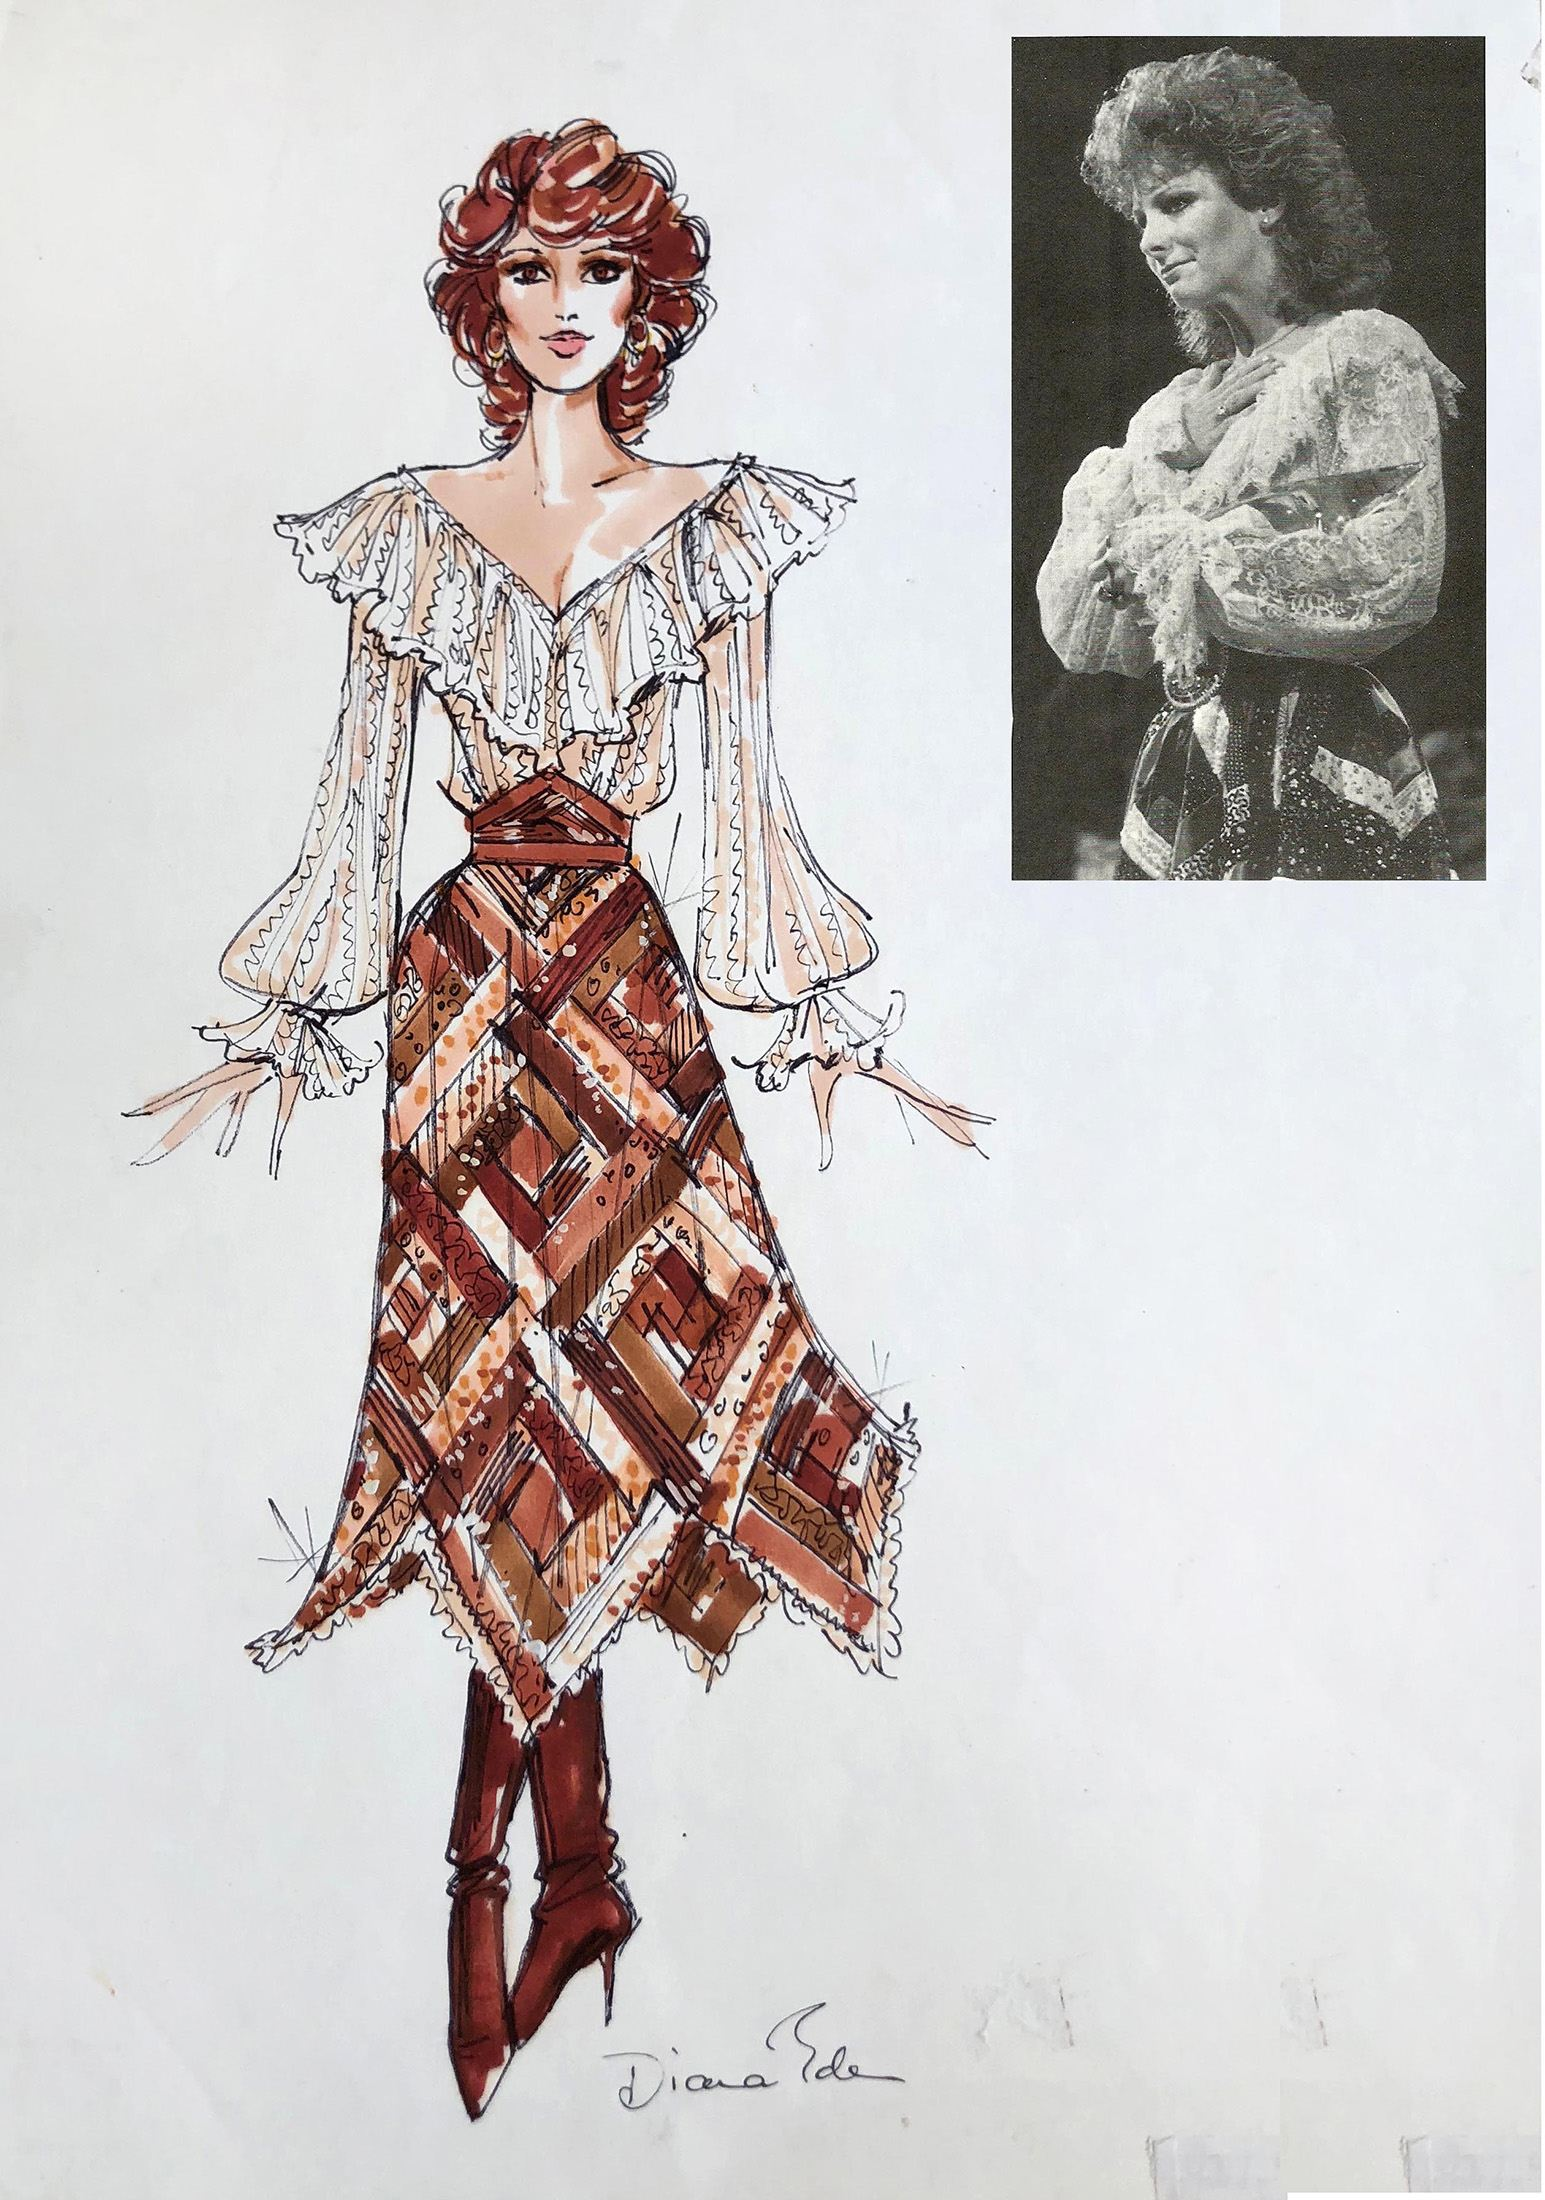 Reba McEntire Sketch and Photo